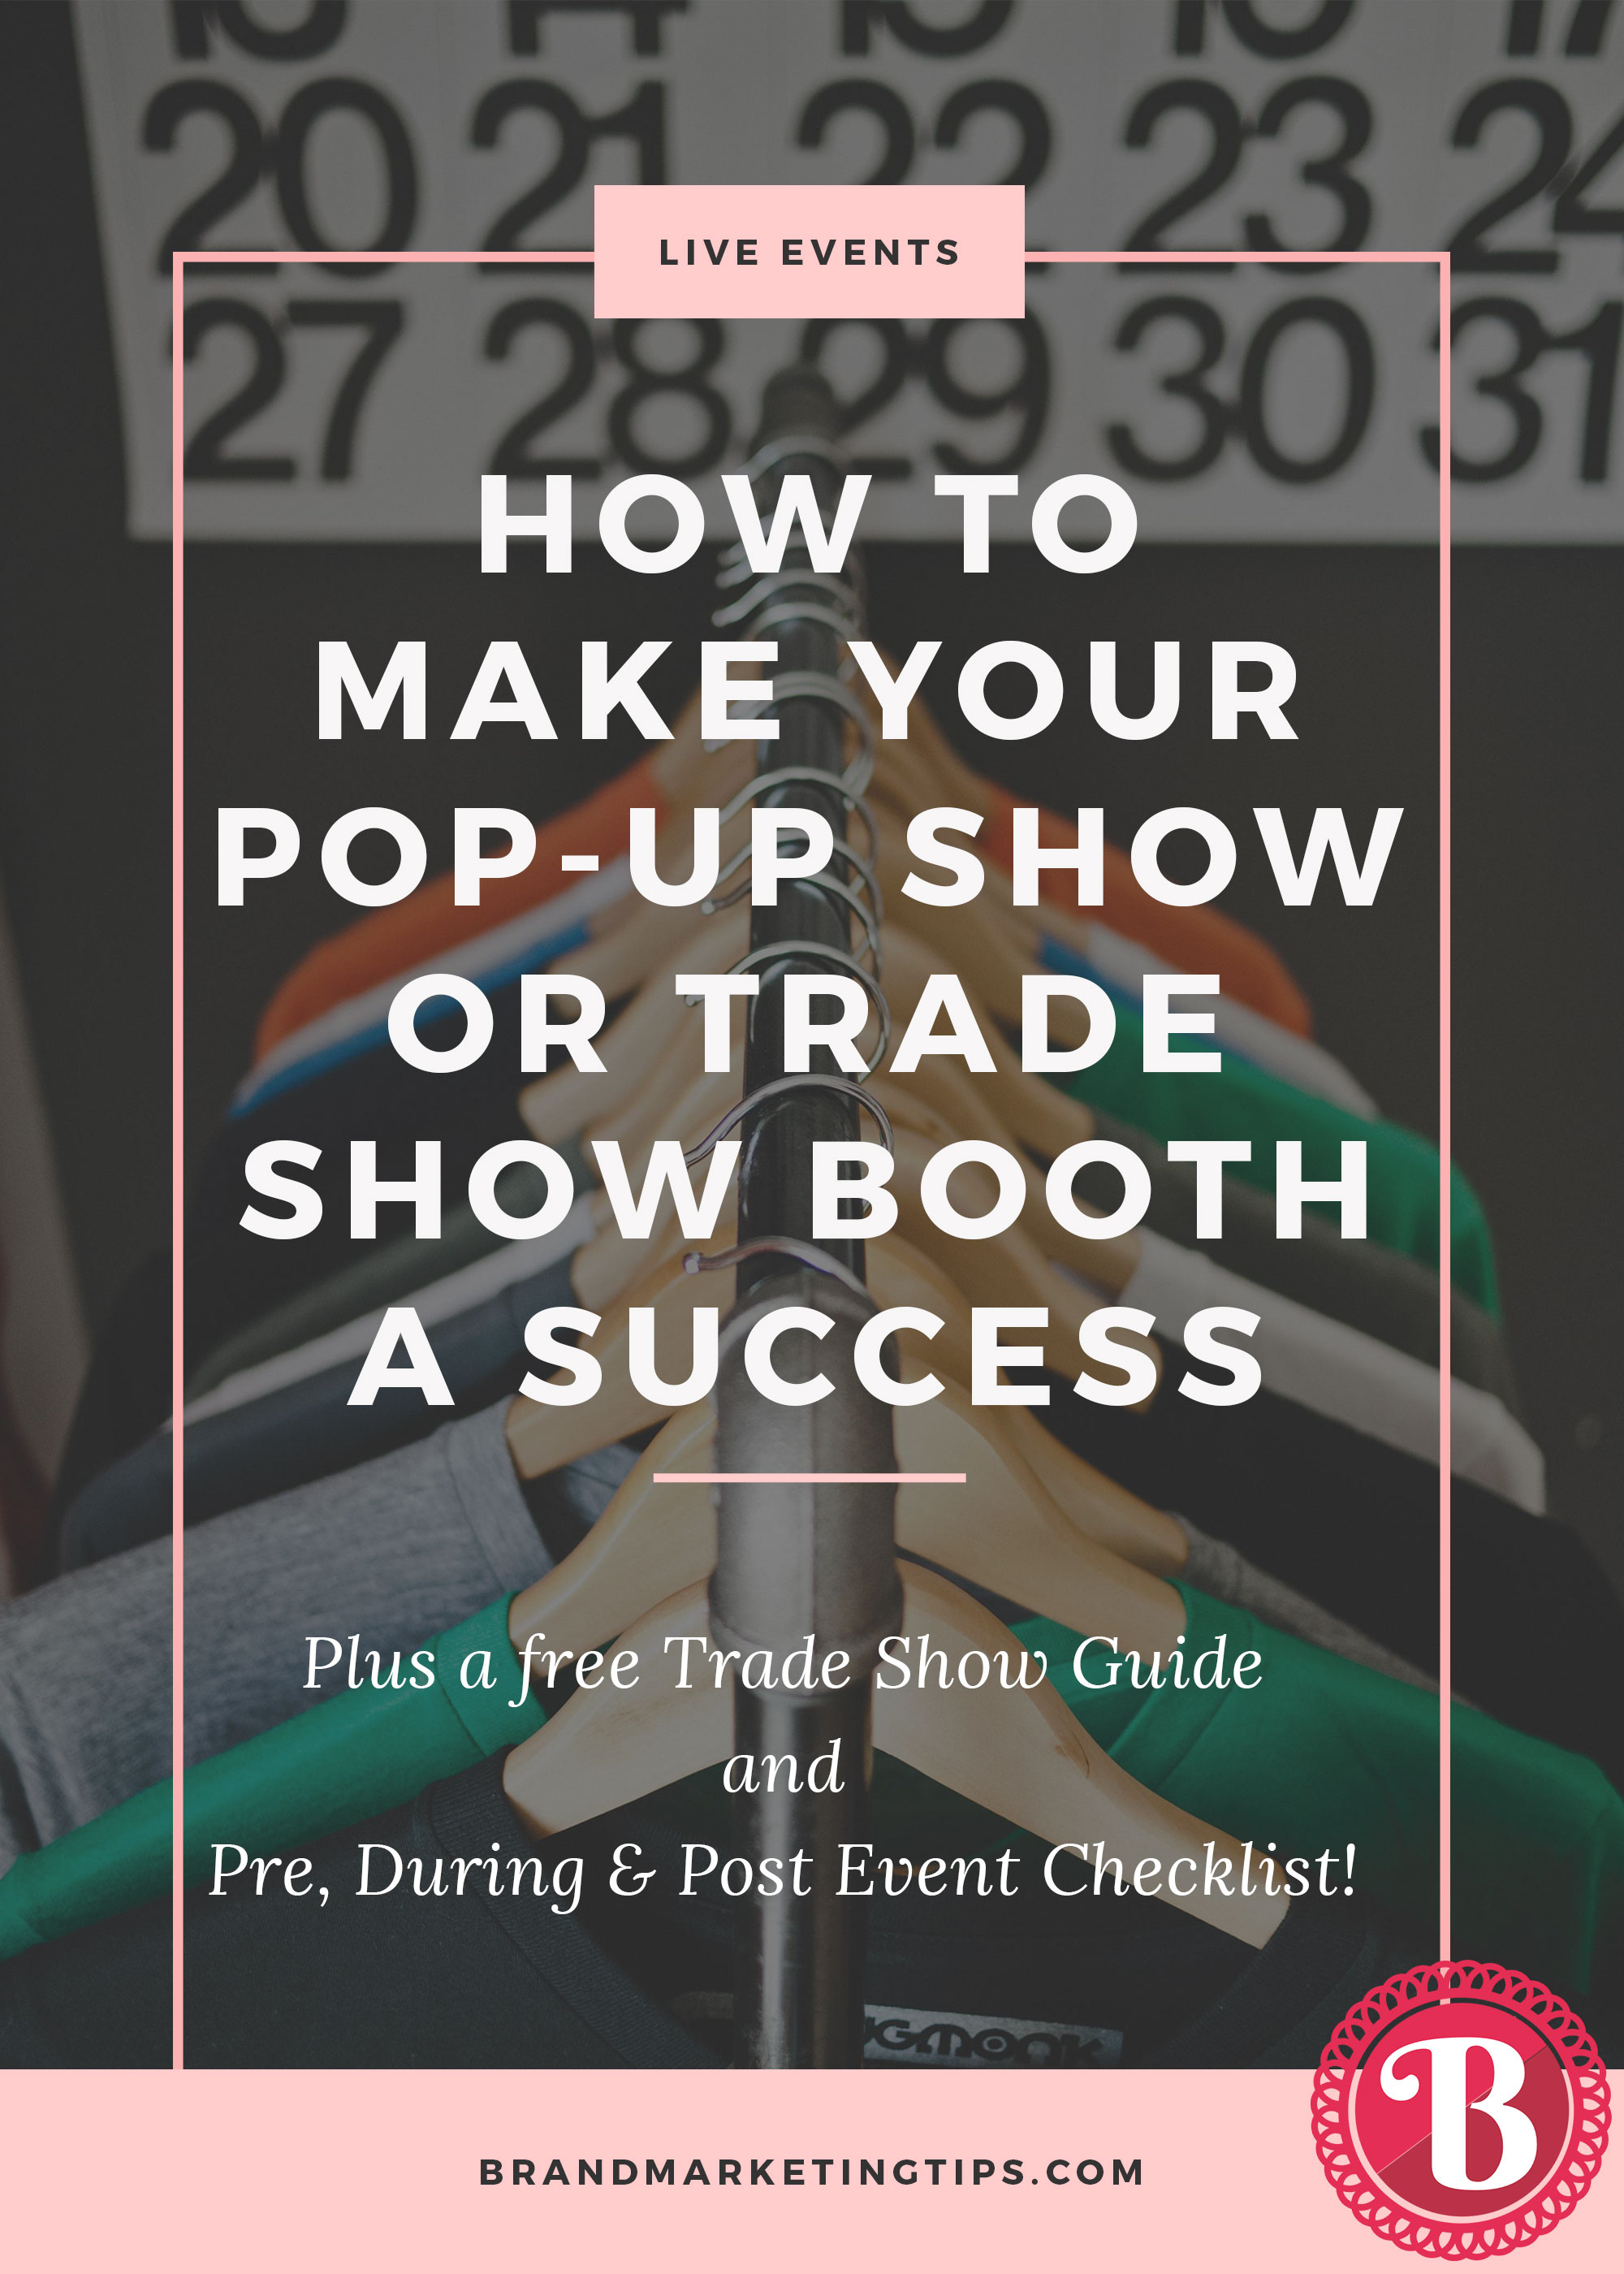 pop-up show or trade show booth tips